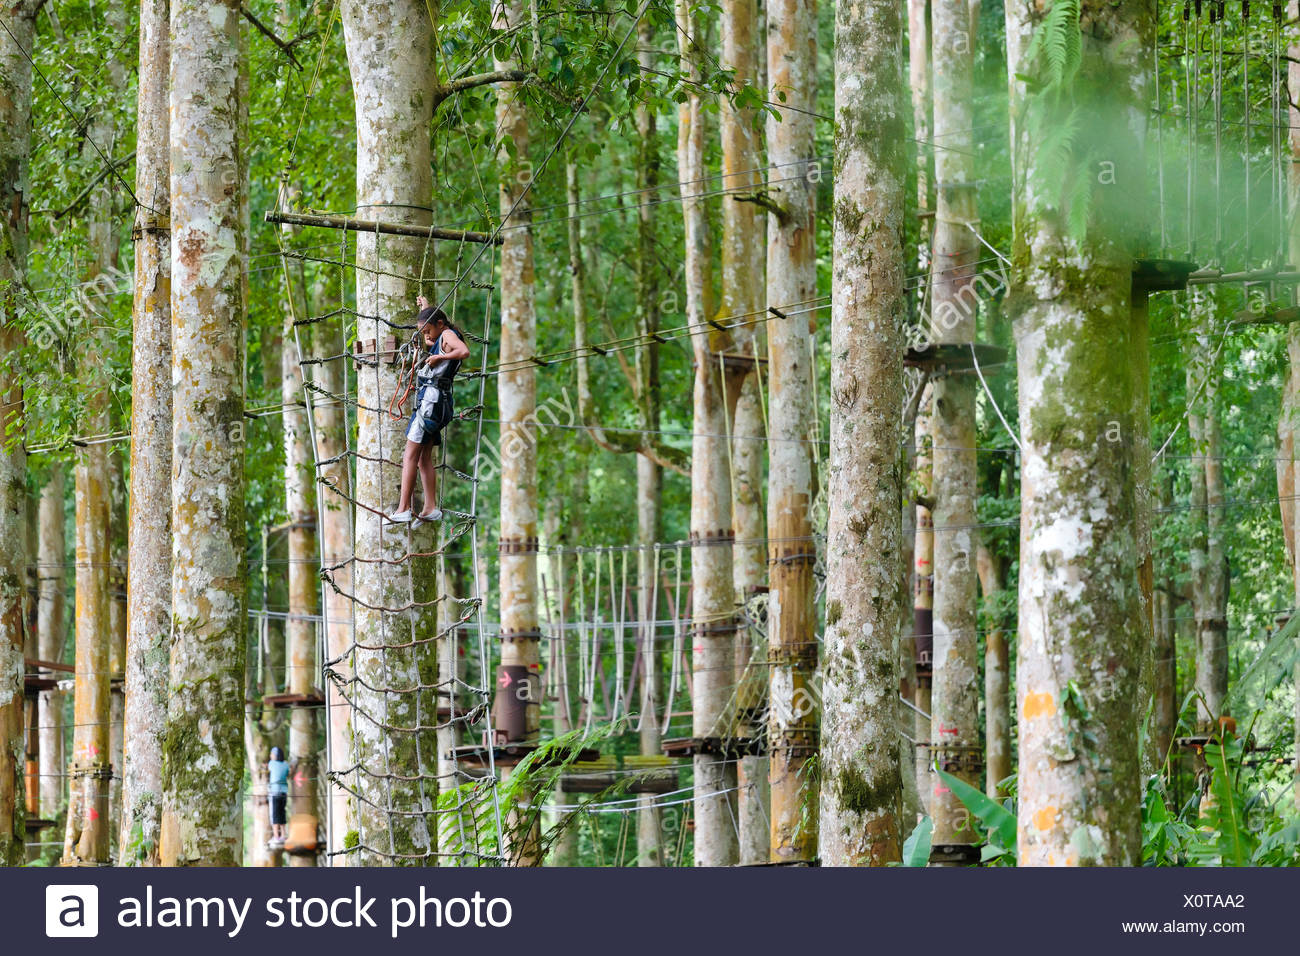 A girl ties into a zipline at a treetop Adventure Park, Bali, Indonesia - Stock Image